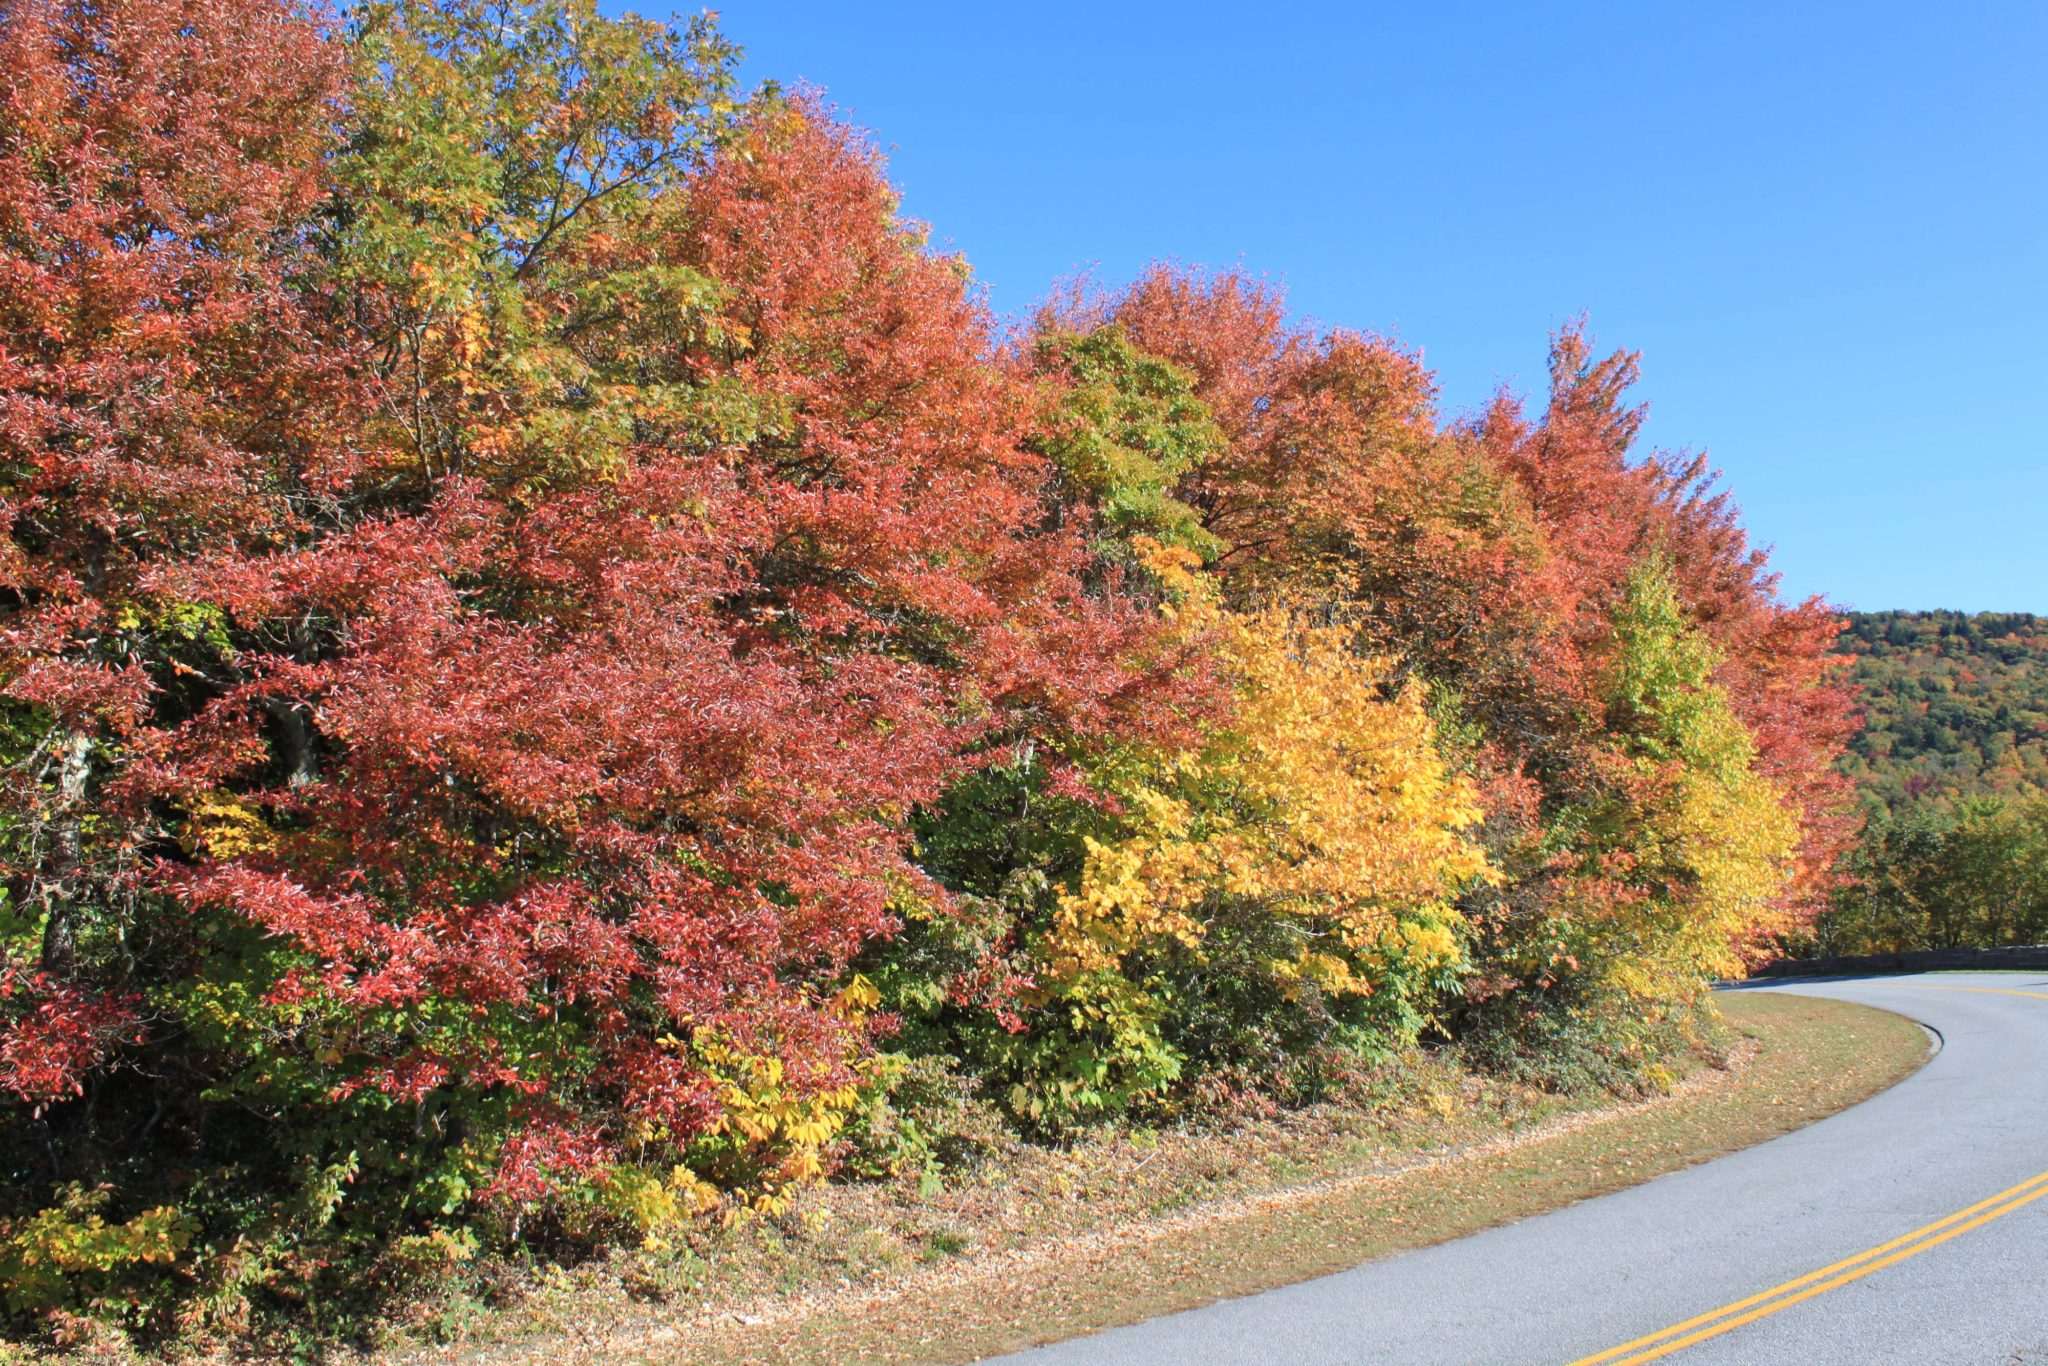 Fall leaves near the Linn Cove Viaduct